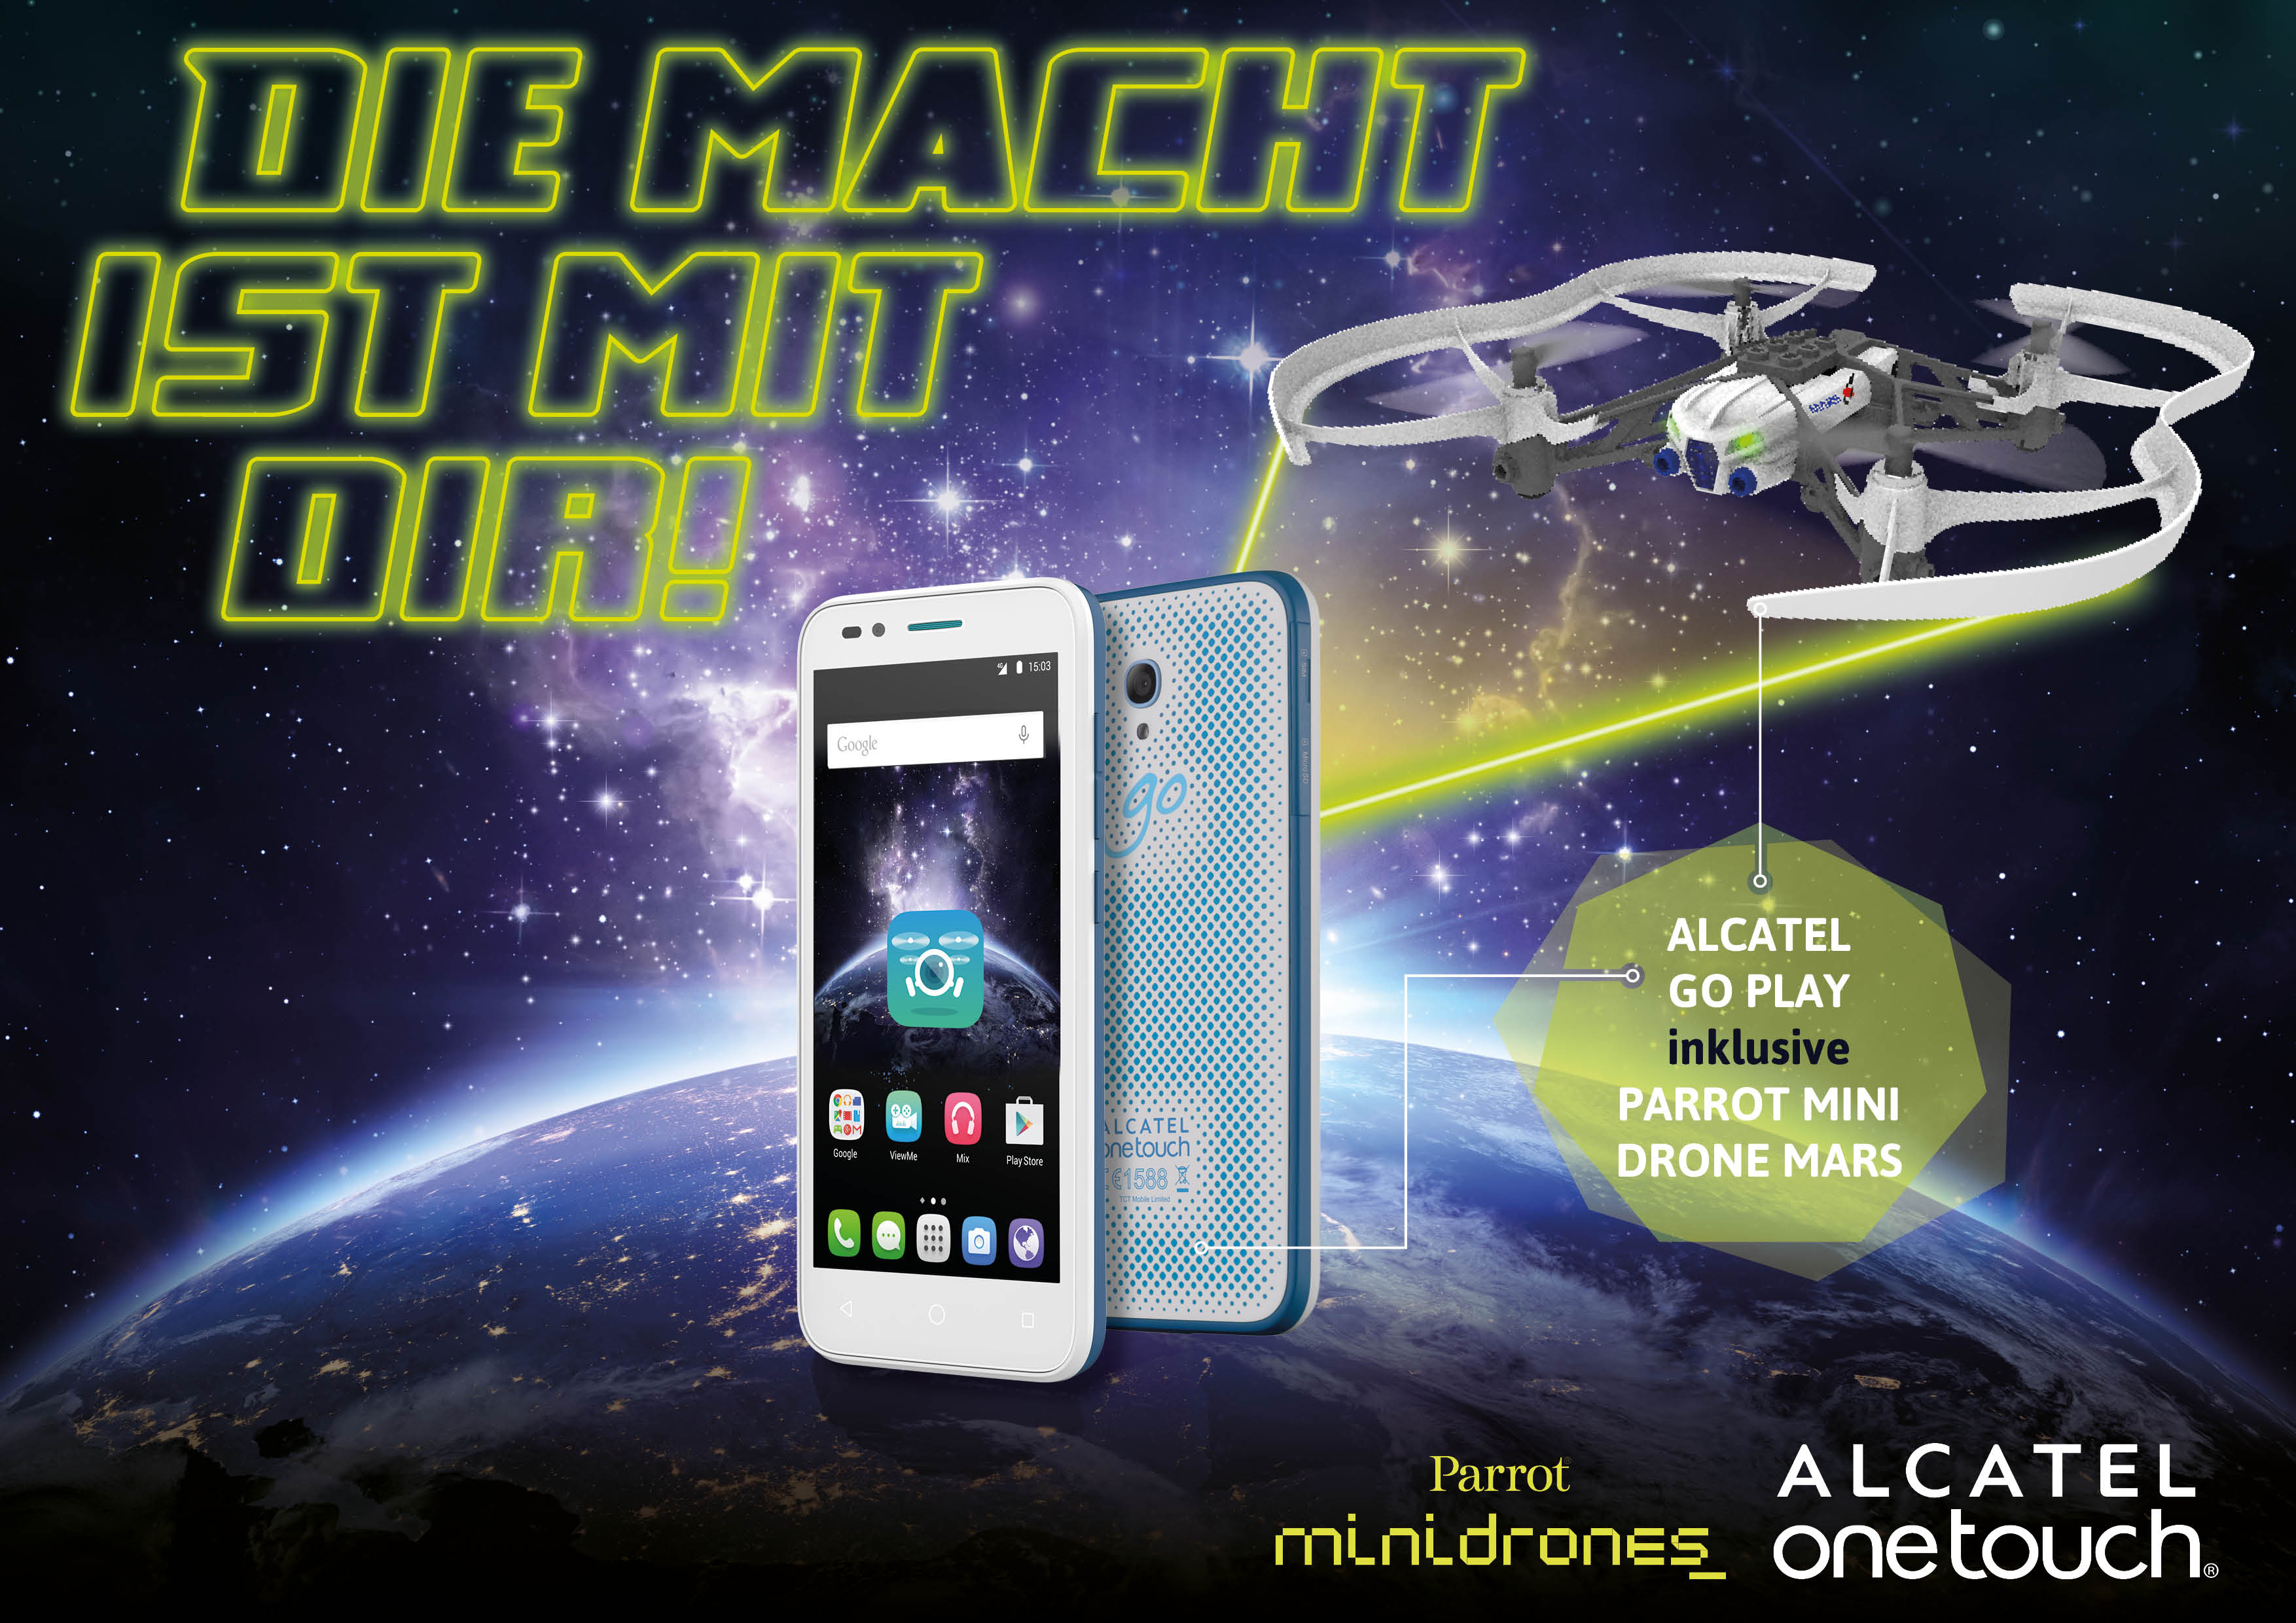 alcatel-one-touch-goplay-parrot-drohne